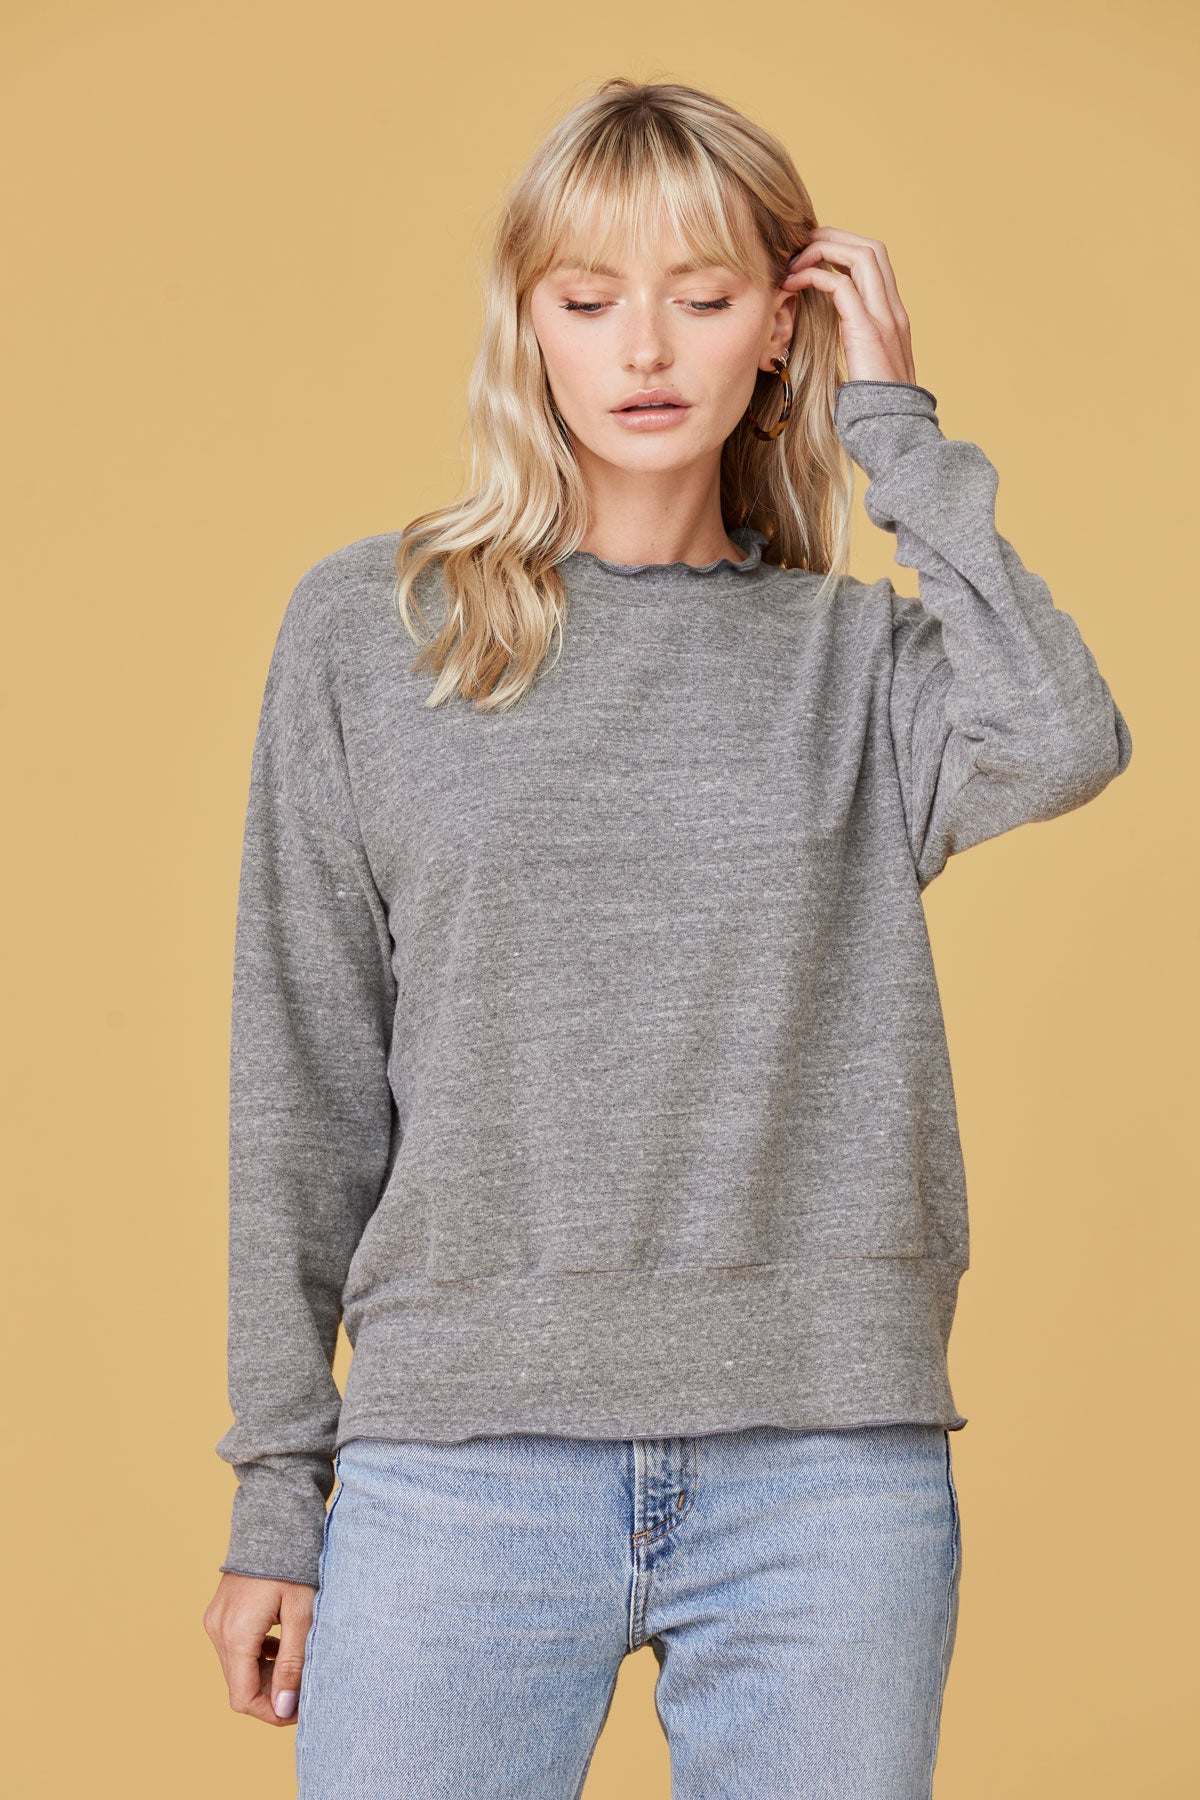 LNA Nora Sweater in Heather Grey